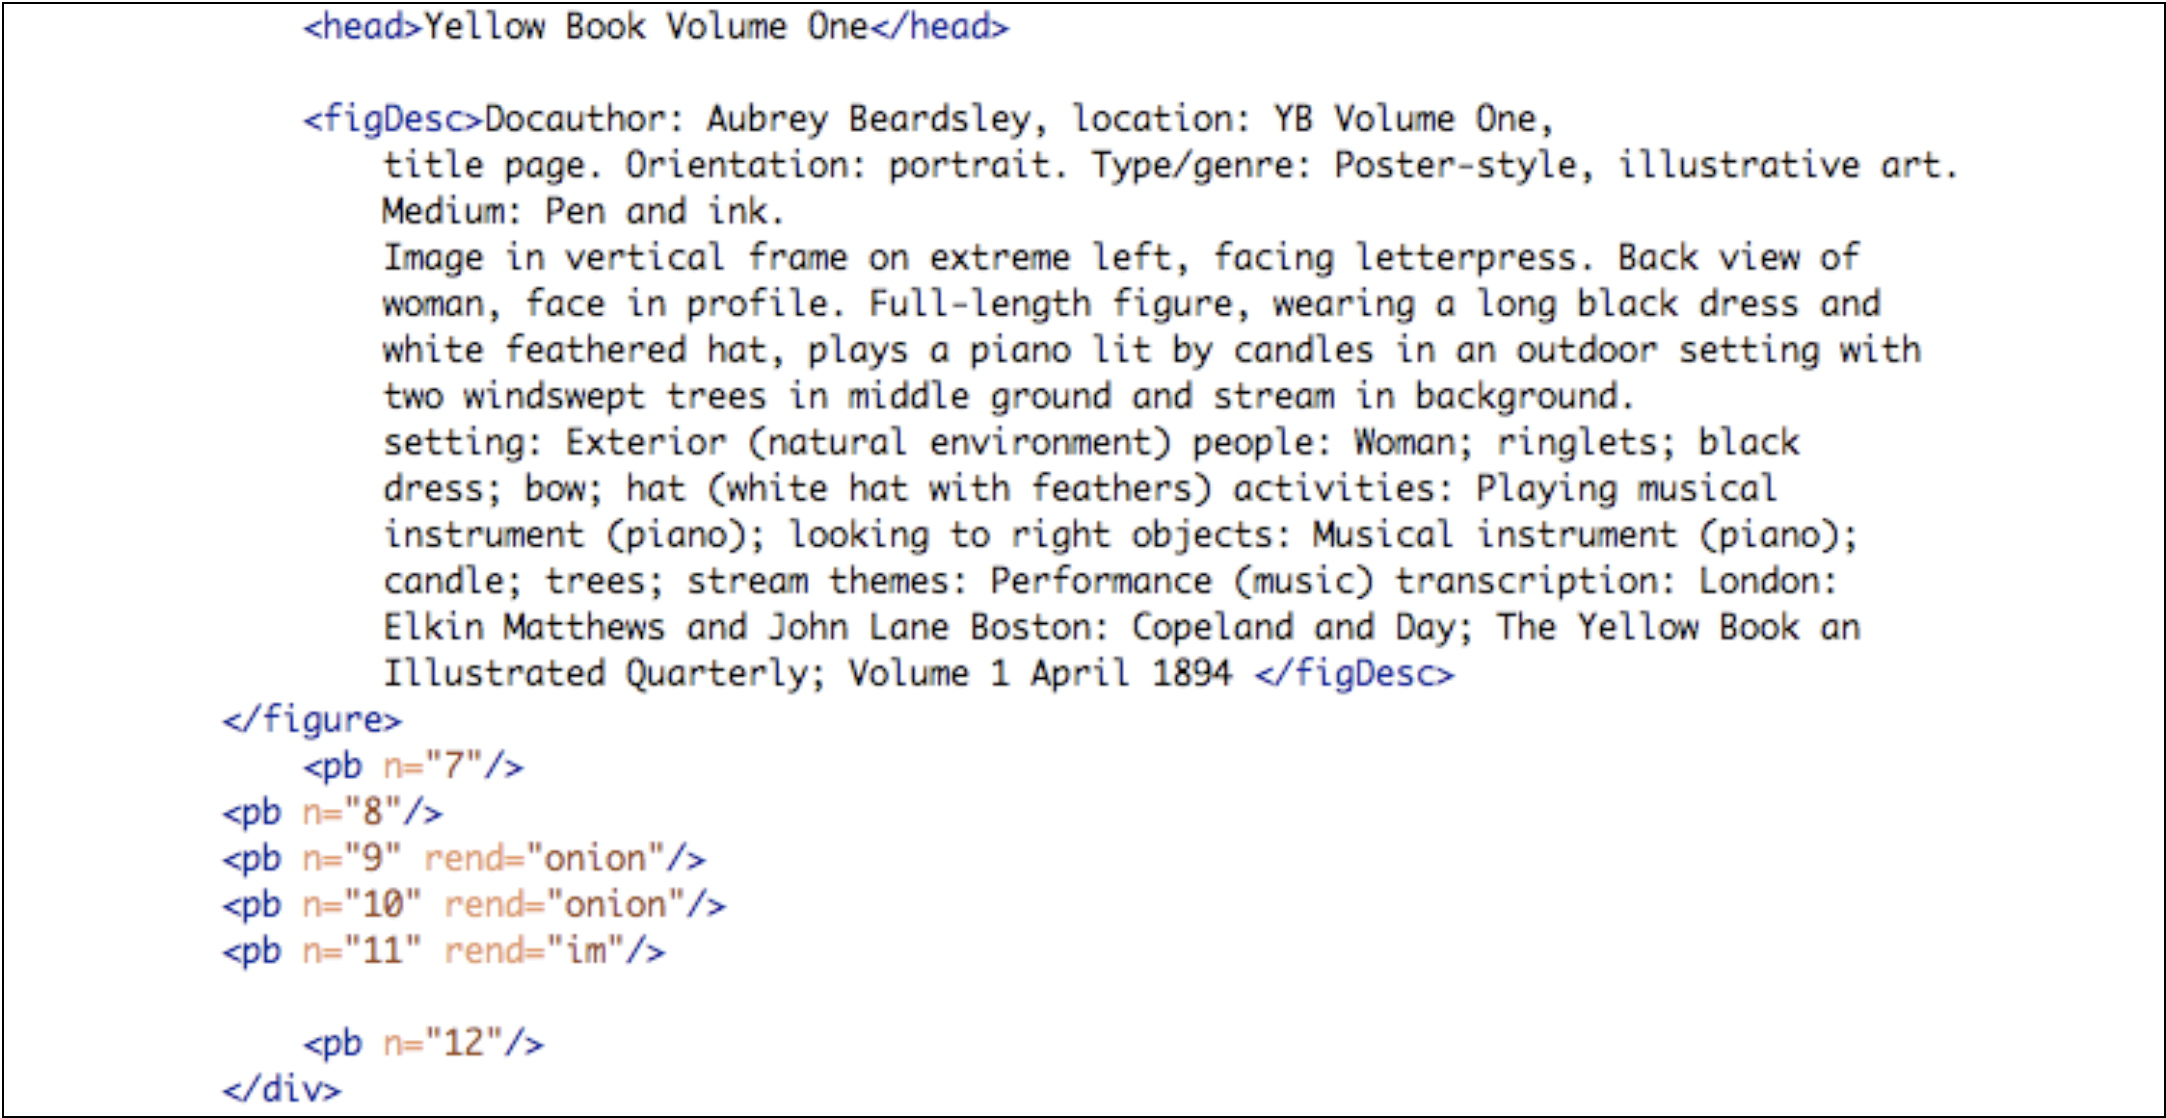 The xml version of the title page for volume 1, showing the onion page rendering.